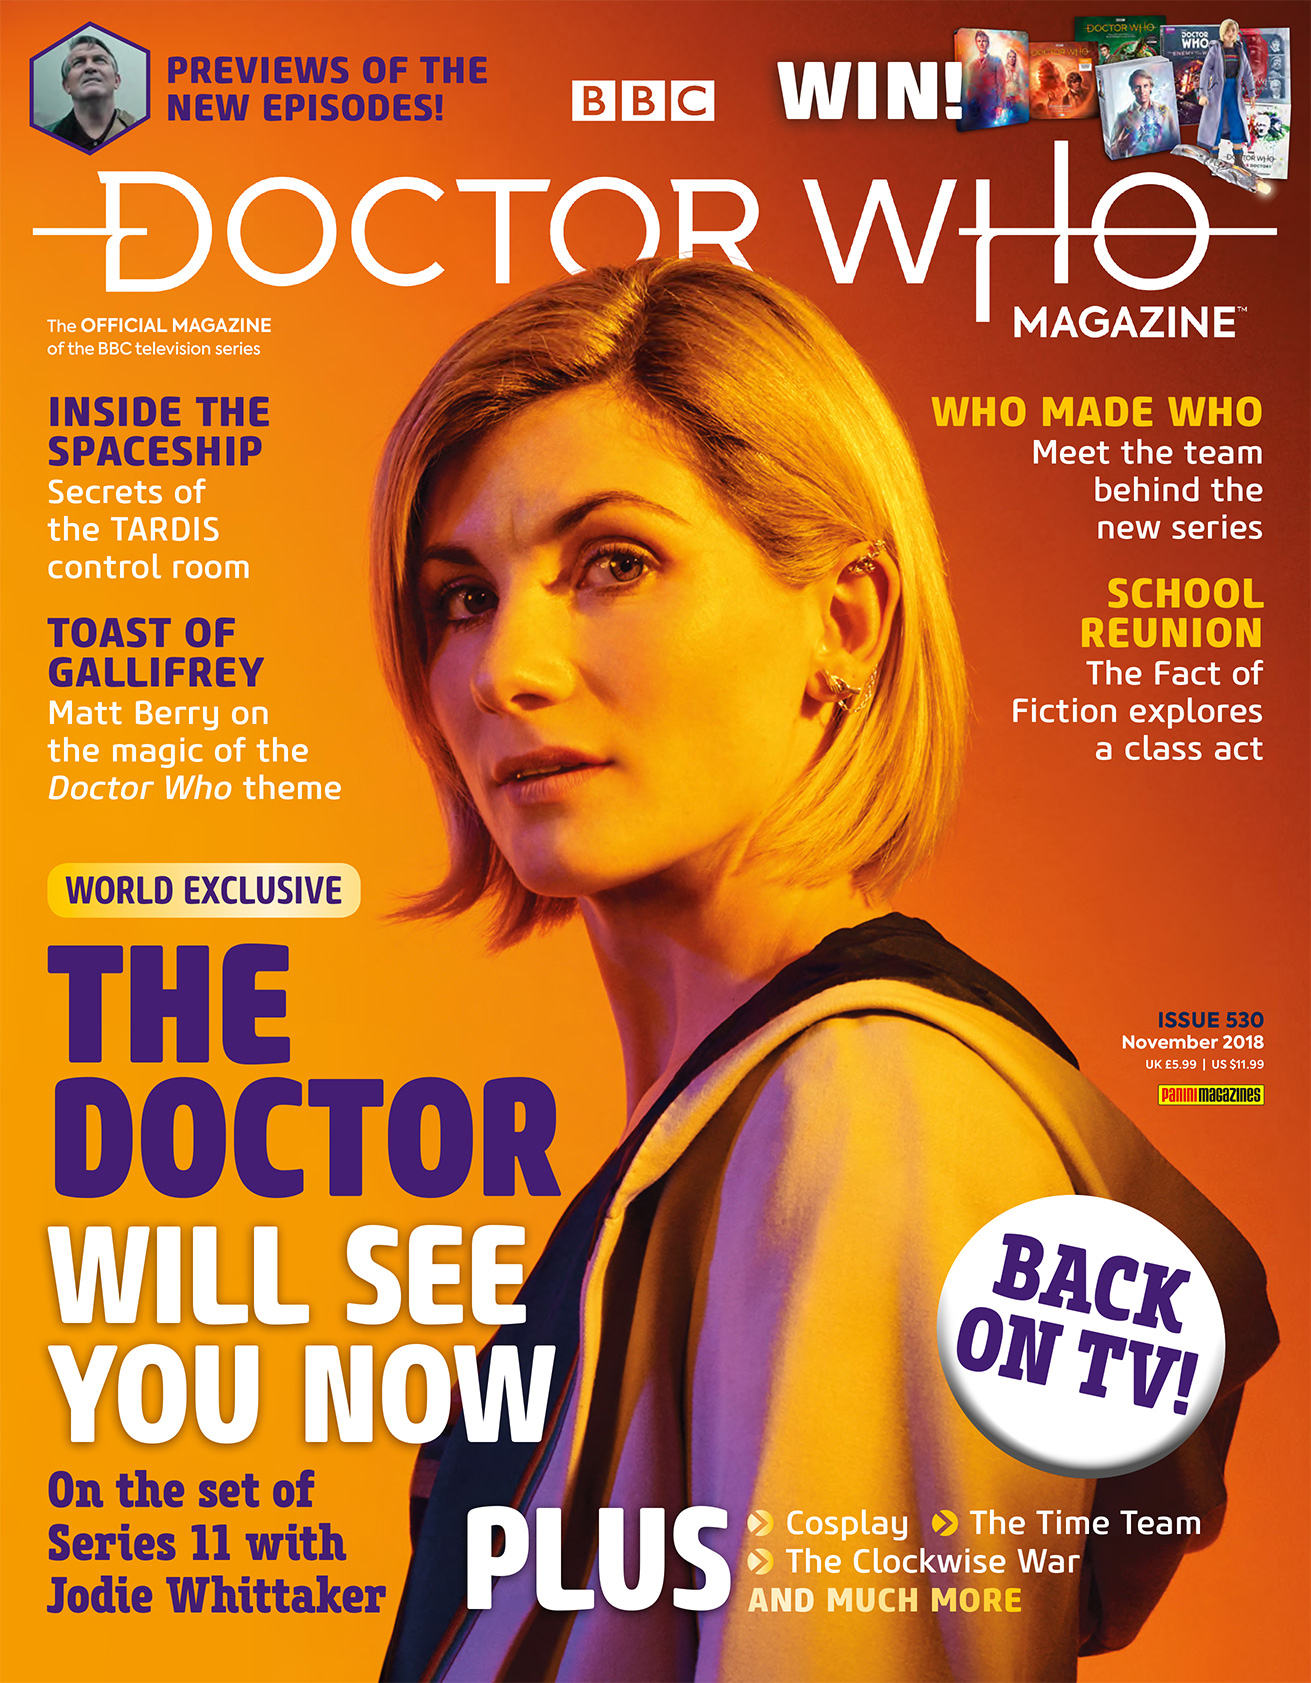 DOCTOR WHO MAGAZINE #530